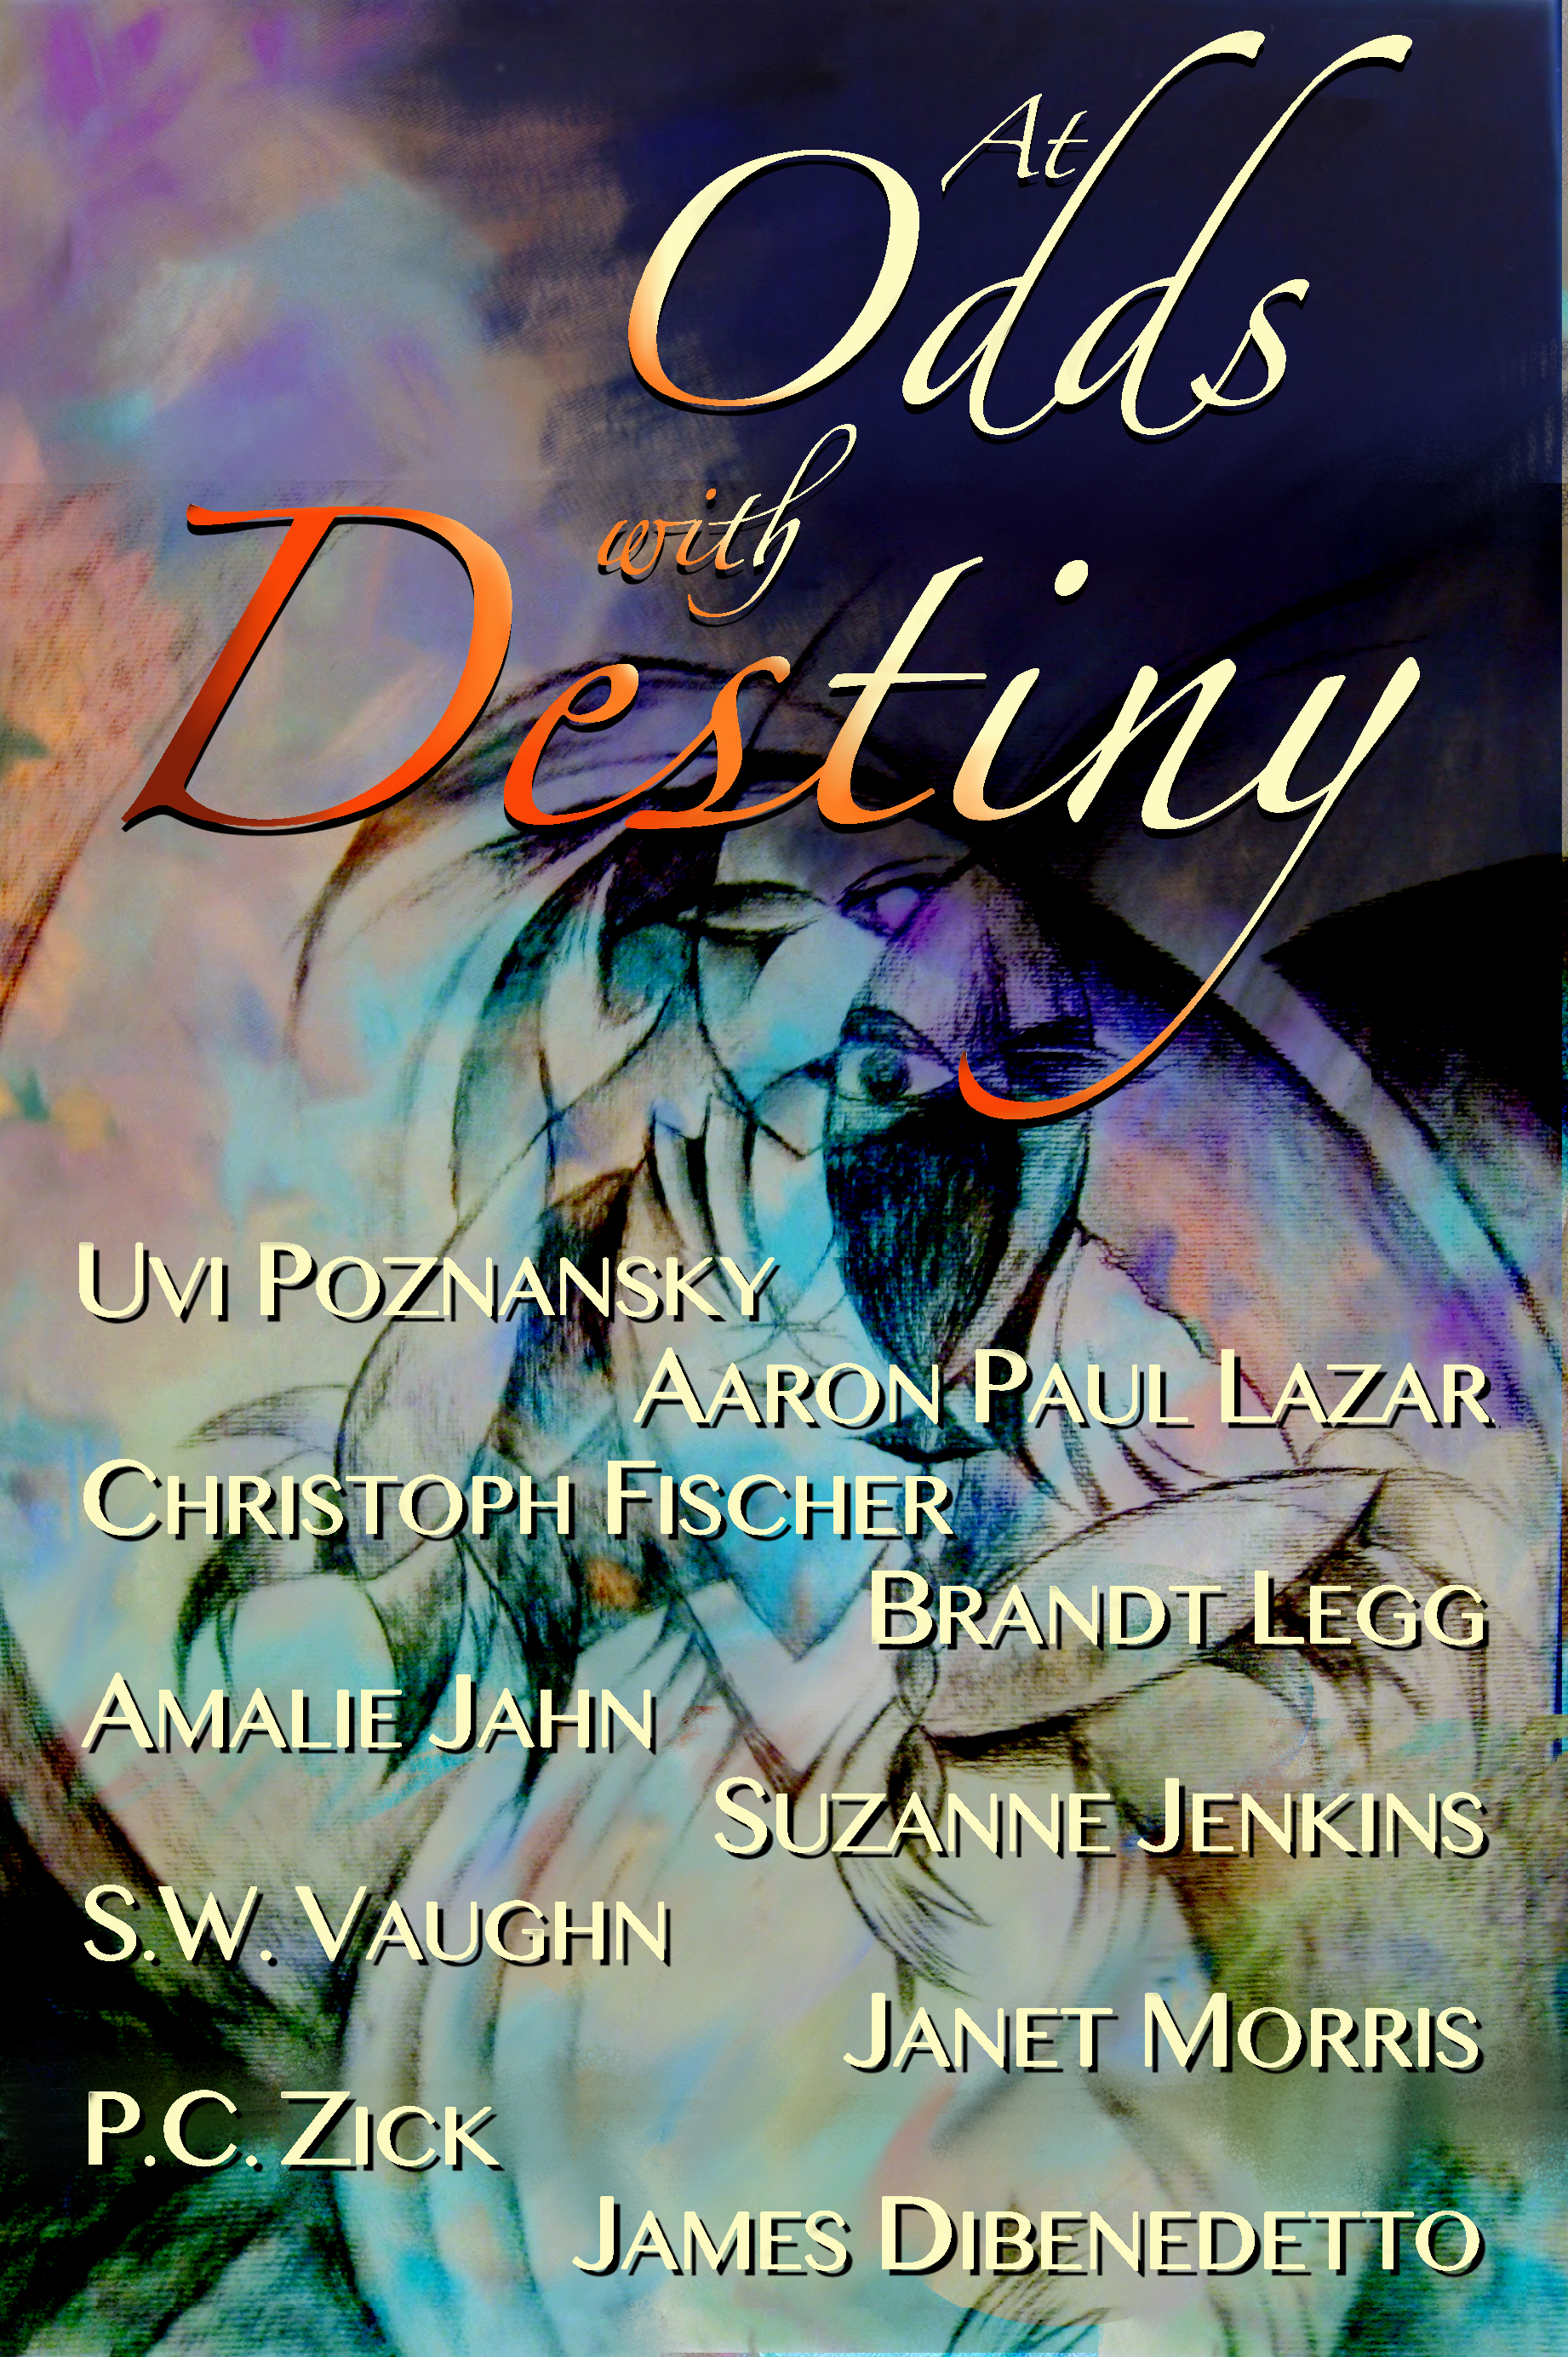 Amaliejahn, Suzanne Jenkins, S W Vaughn, Janet Morris, Pc Zick, &  Jj Dibenedetto, A Boxedset Free For A Limited Time Only, Until 4302015